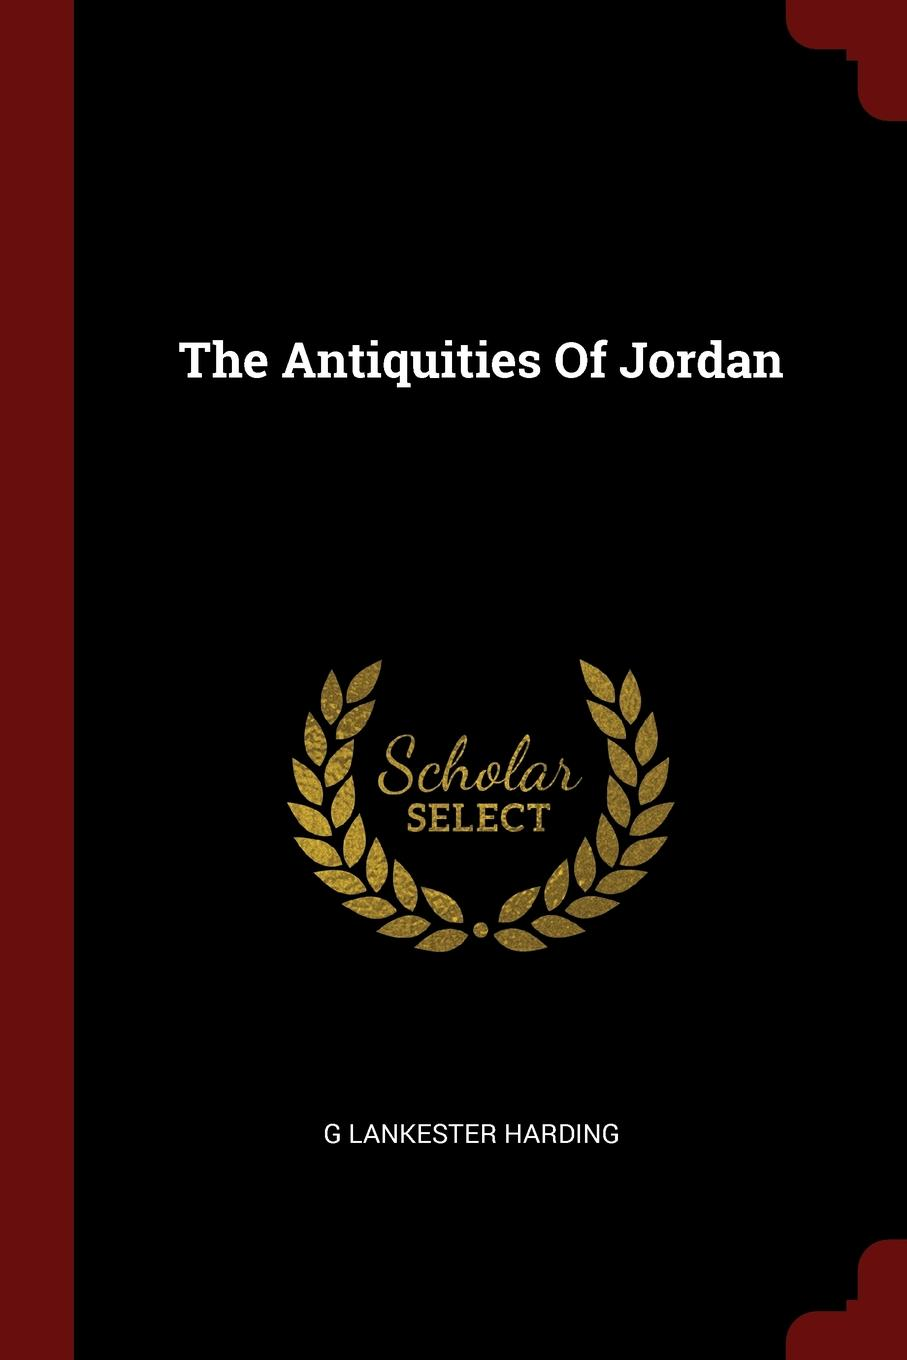 G Lankester Harding The Antiquities Of Jordan g lankester harding the antiquities of jordan